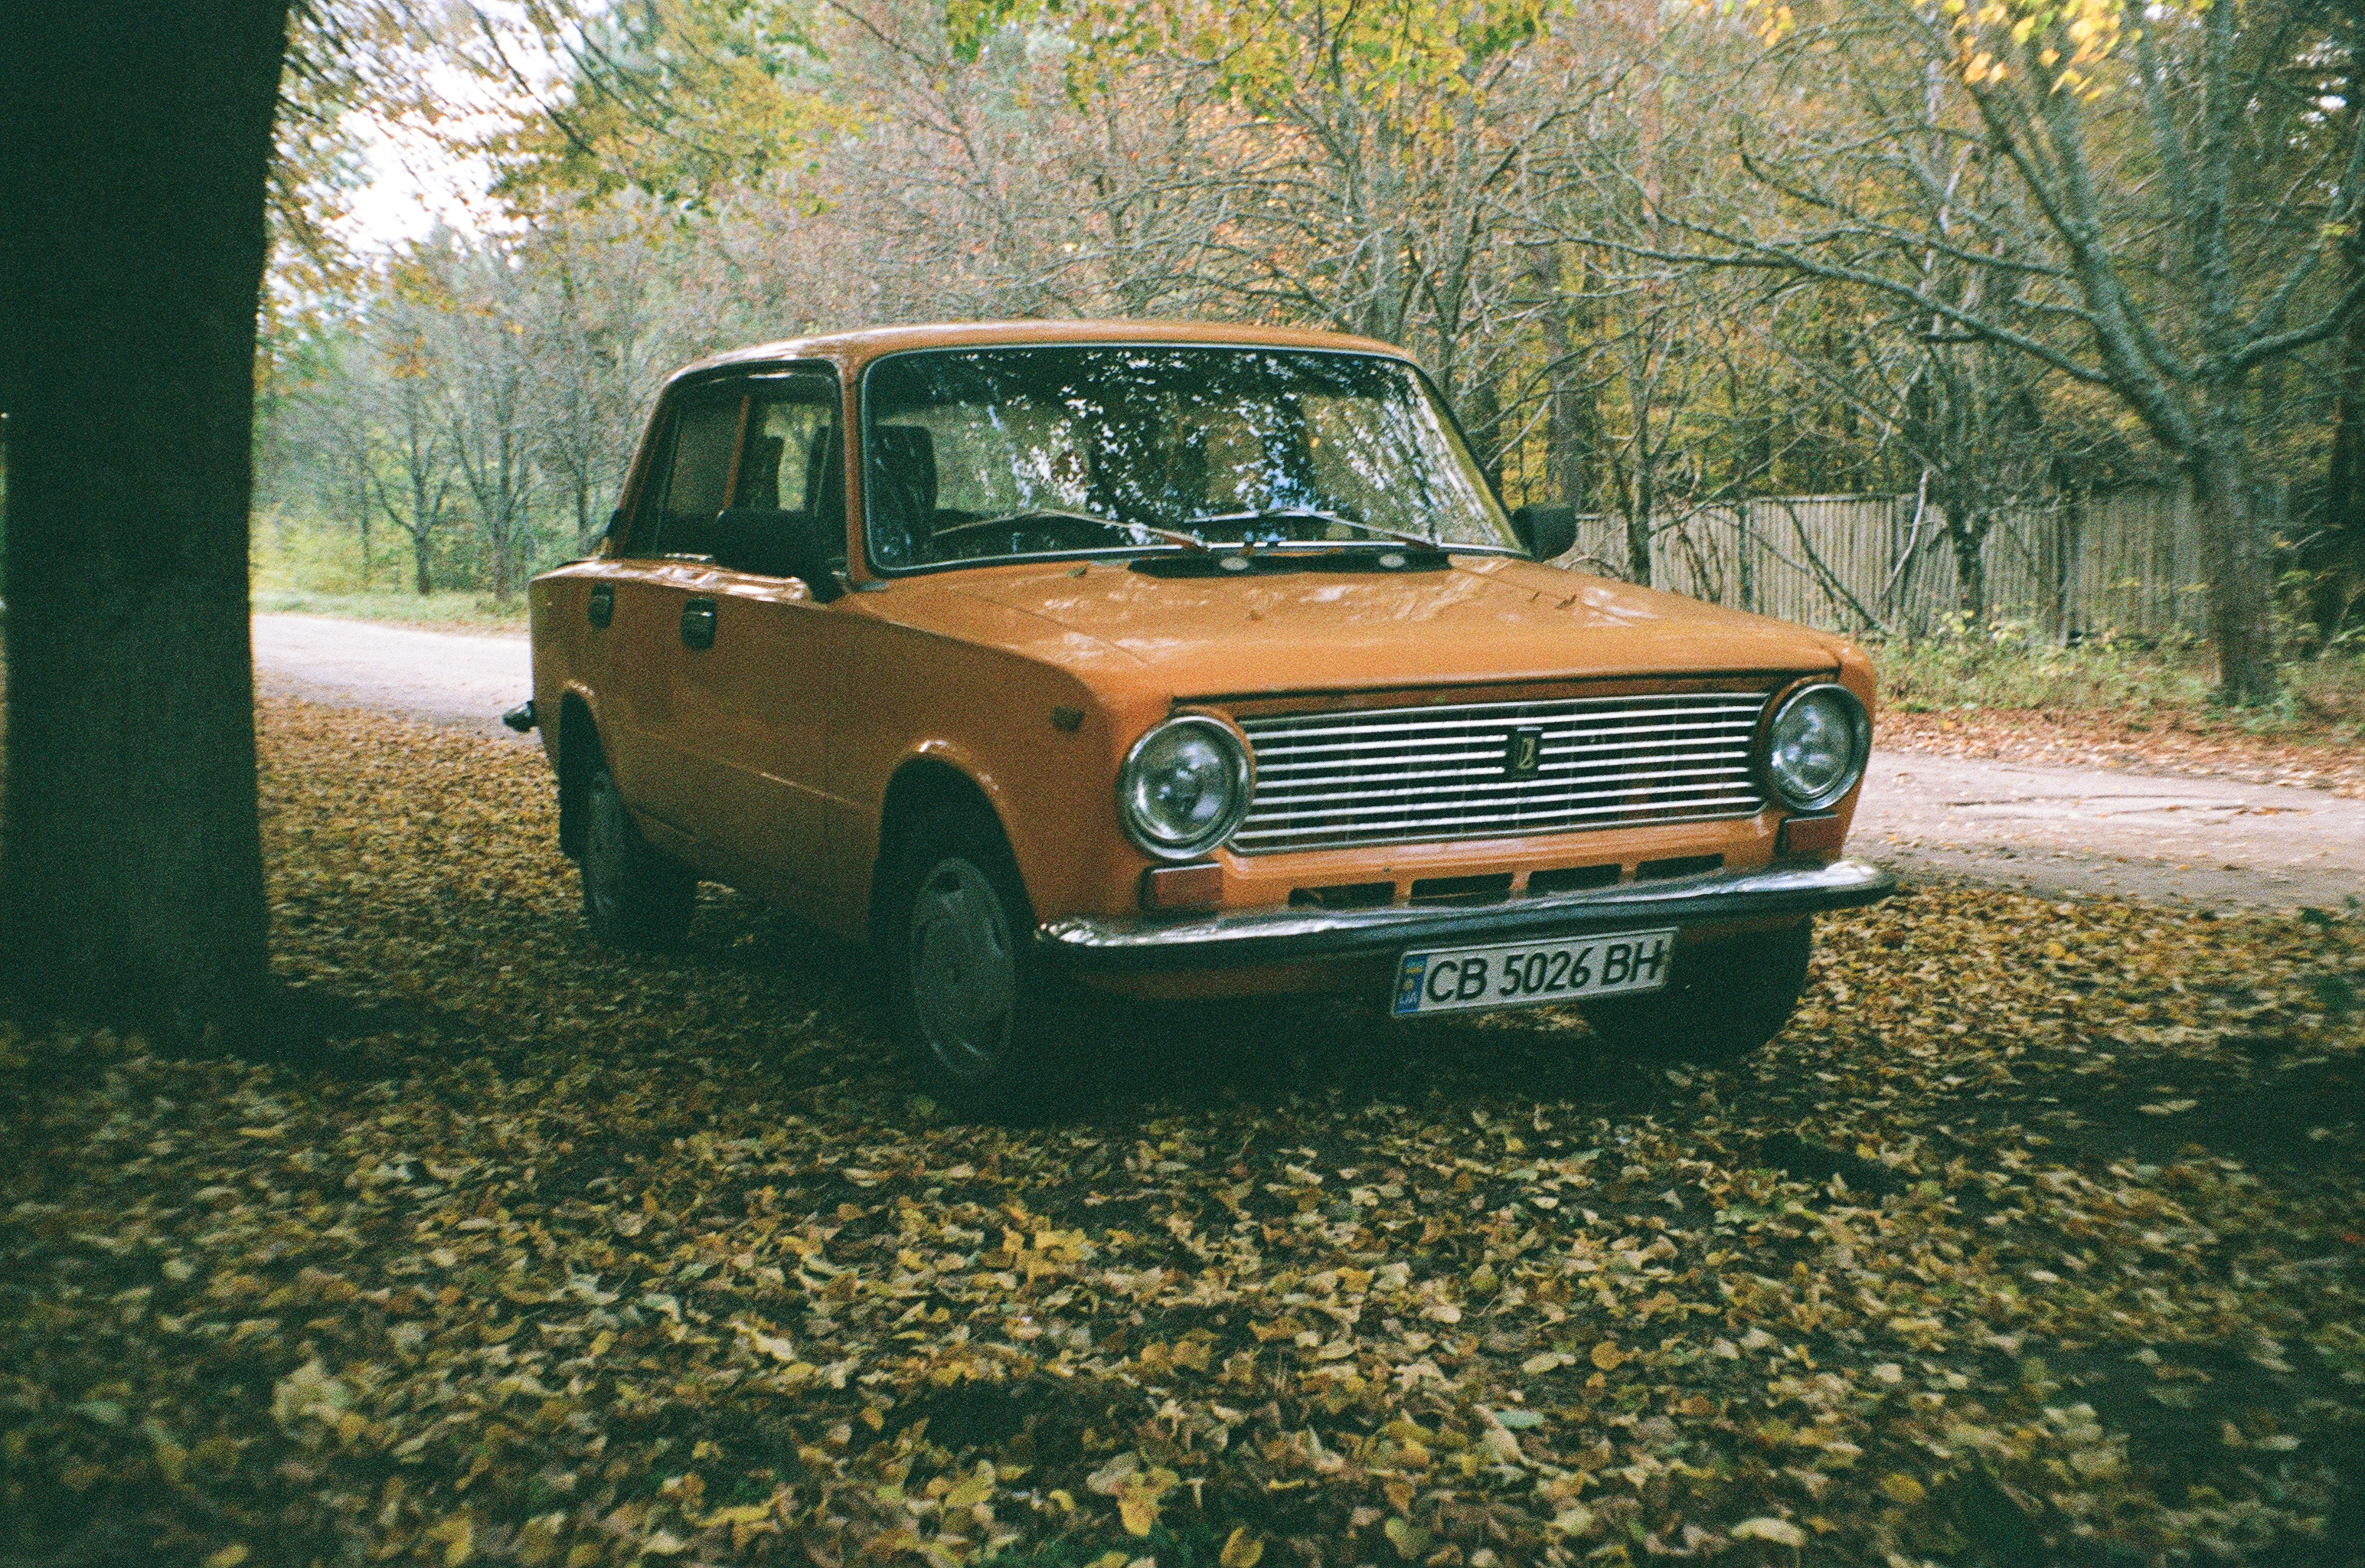 35mm lada ukranian car chernobyl